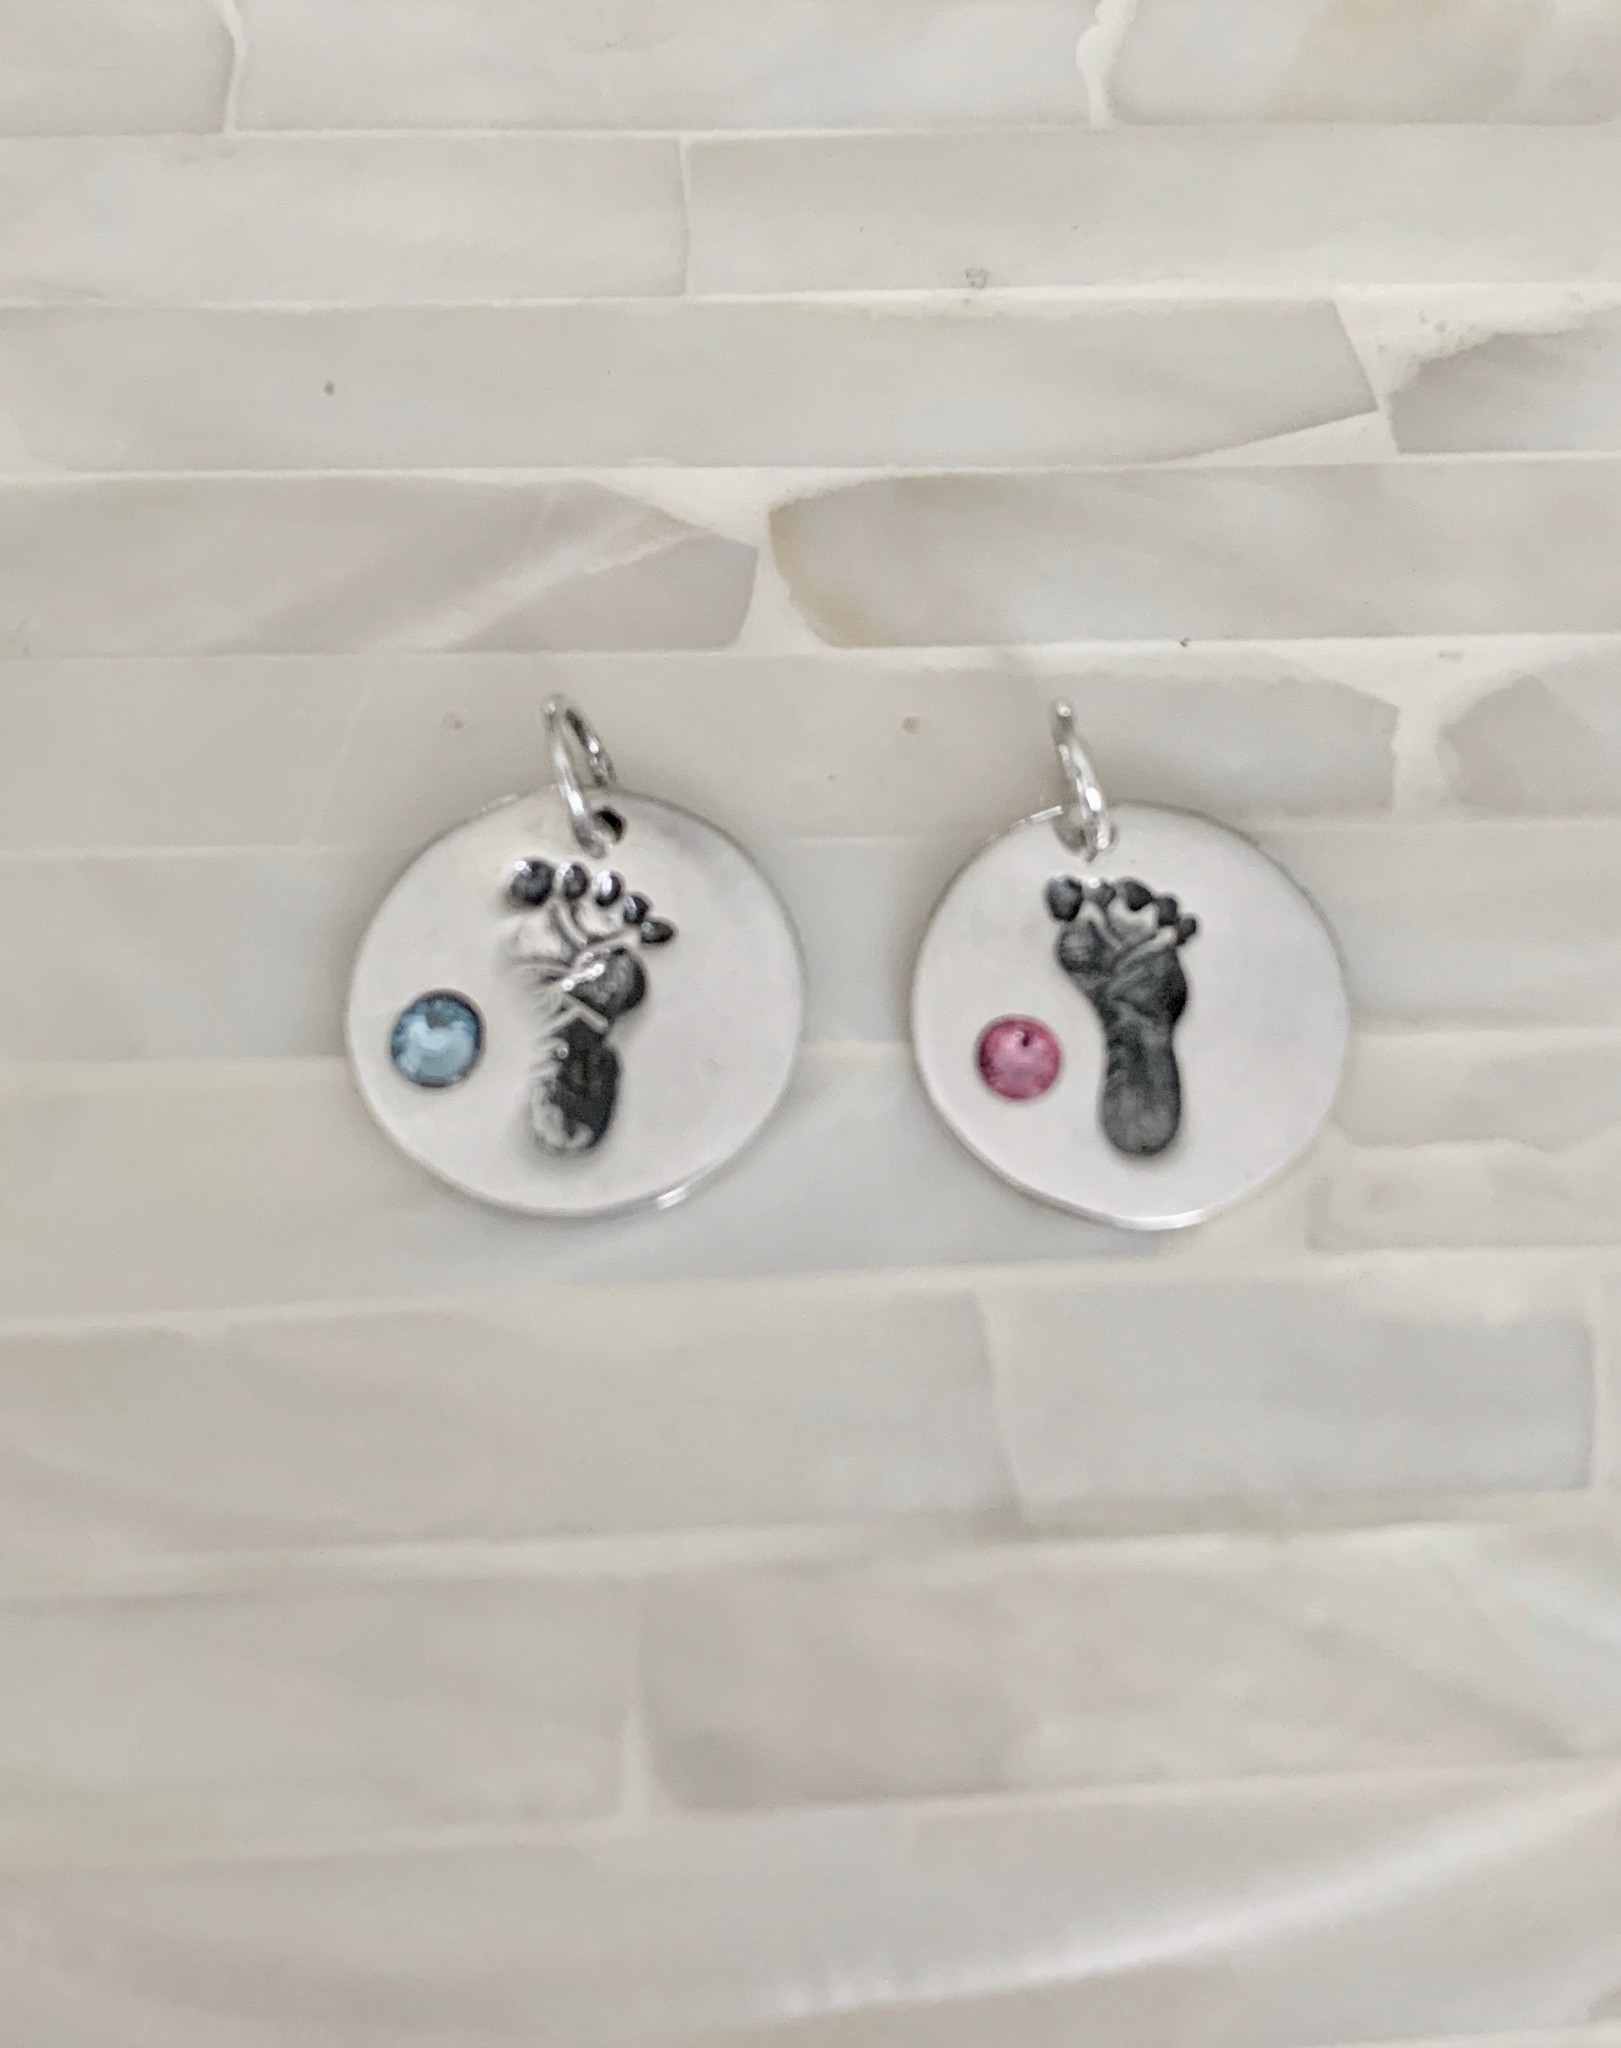 Baby Name Necklace Footprint Charm Kandsimpressions